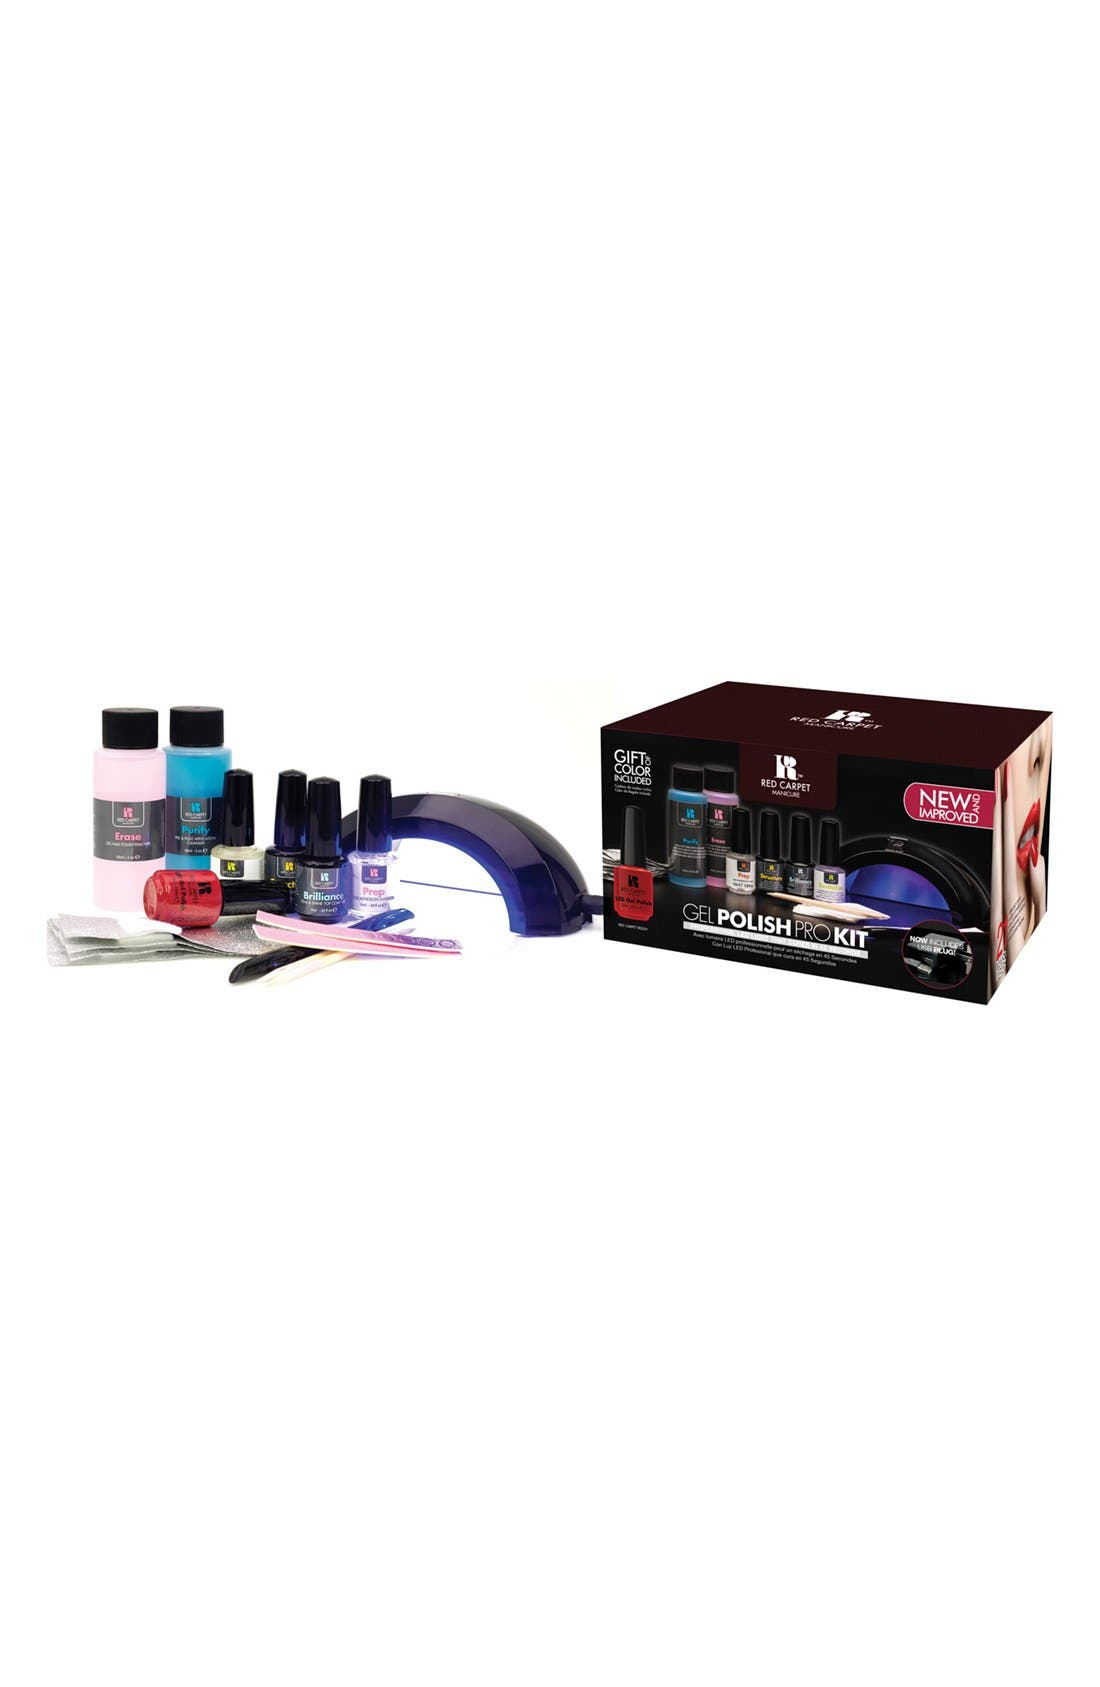 Red Carpet Manicure 'Gel Polish Pro' Kit ($85 Value)